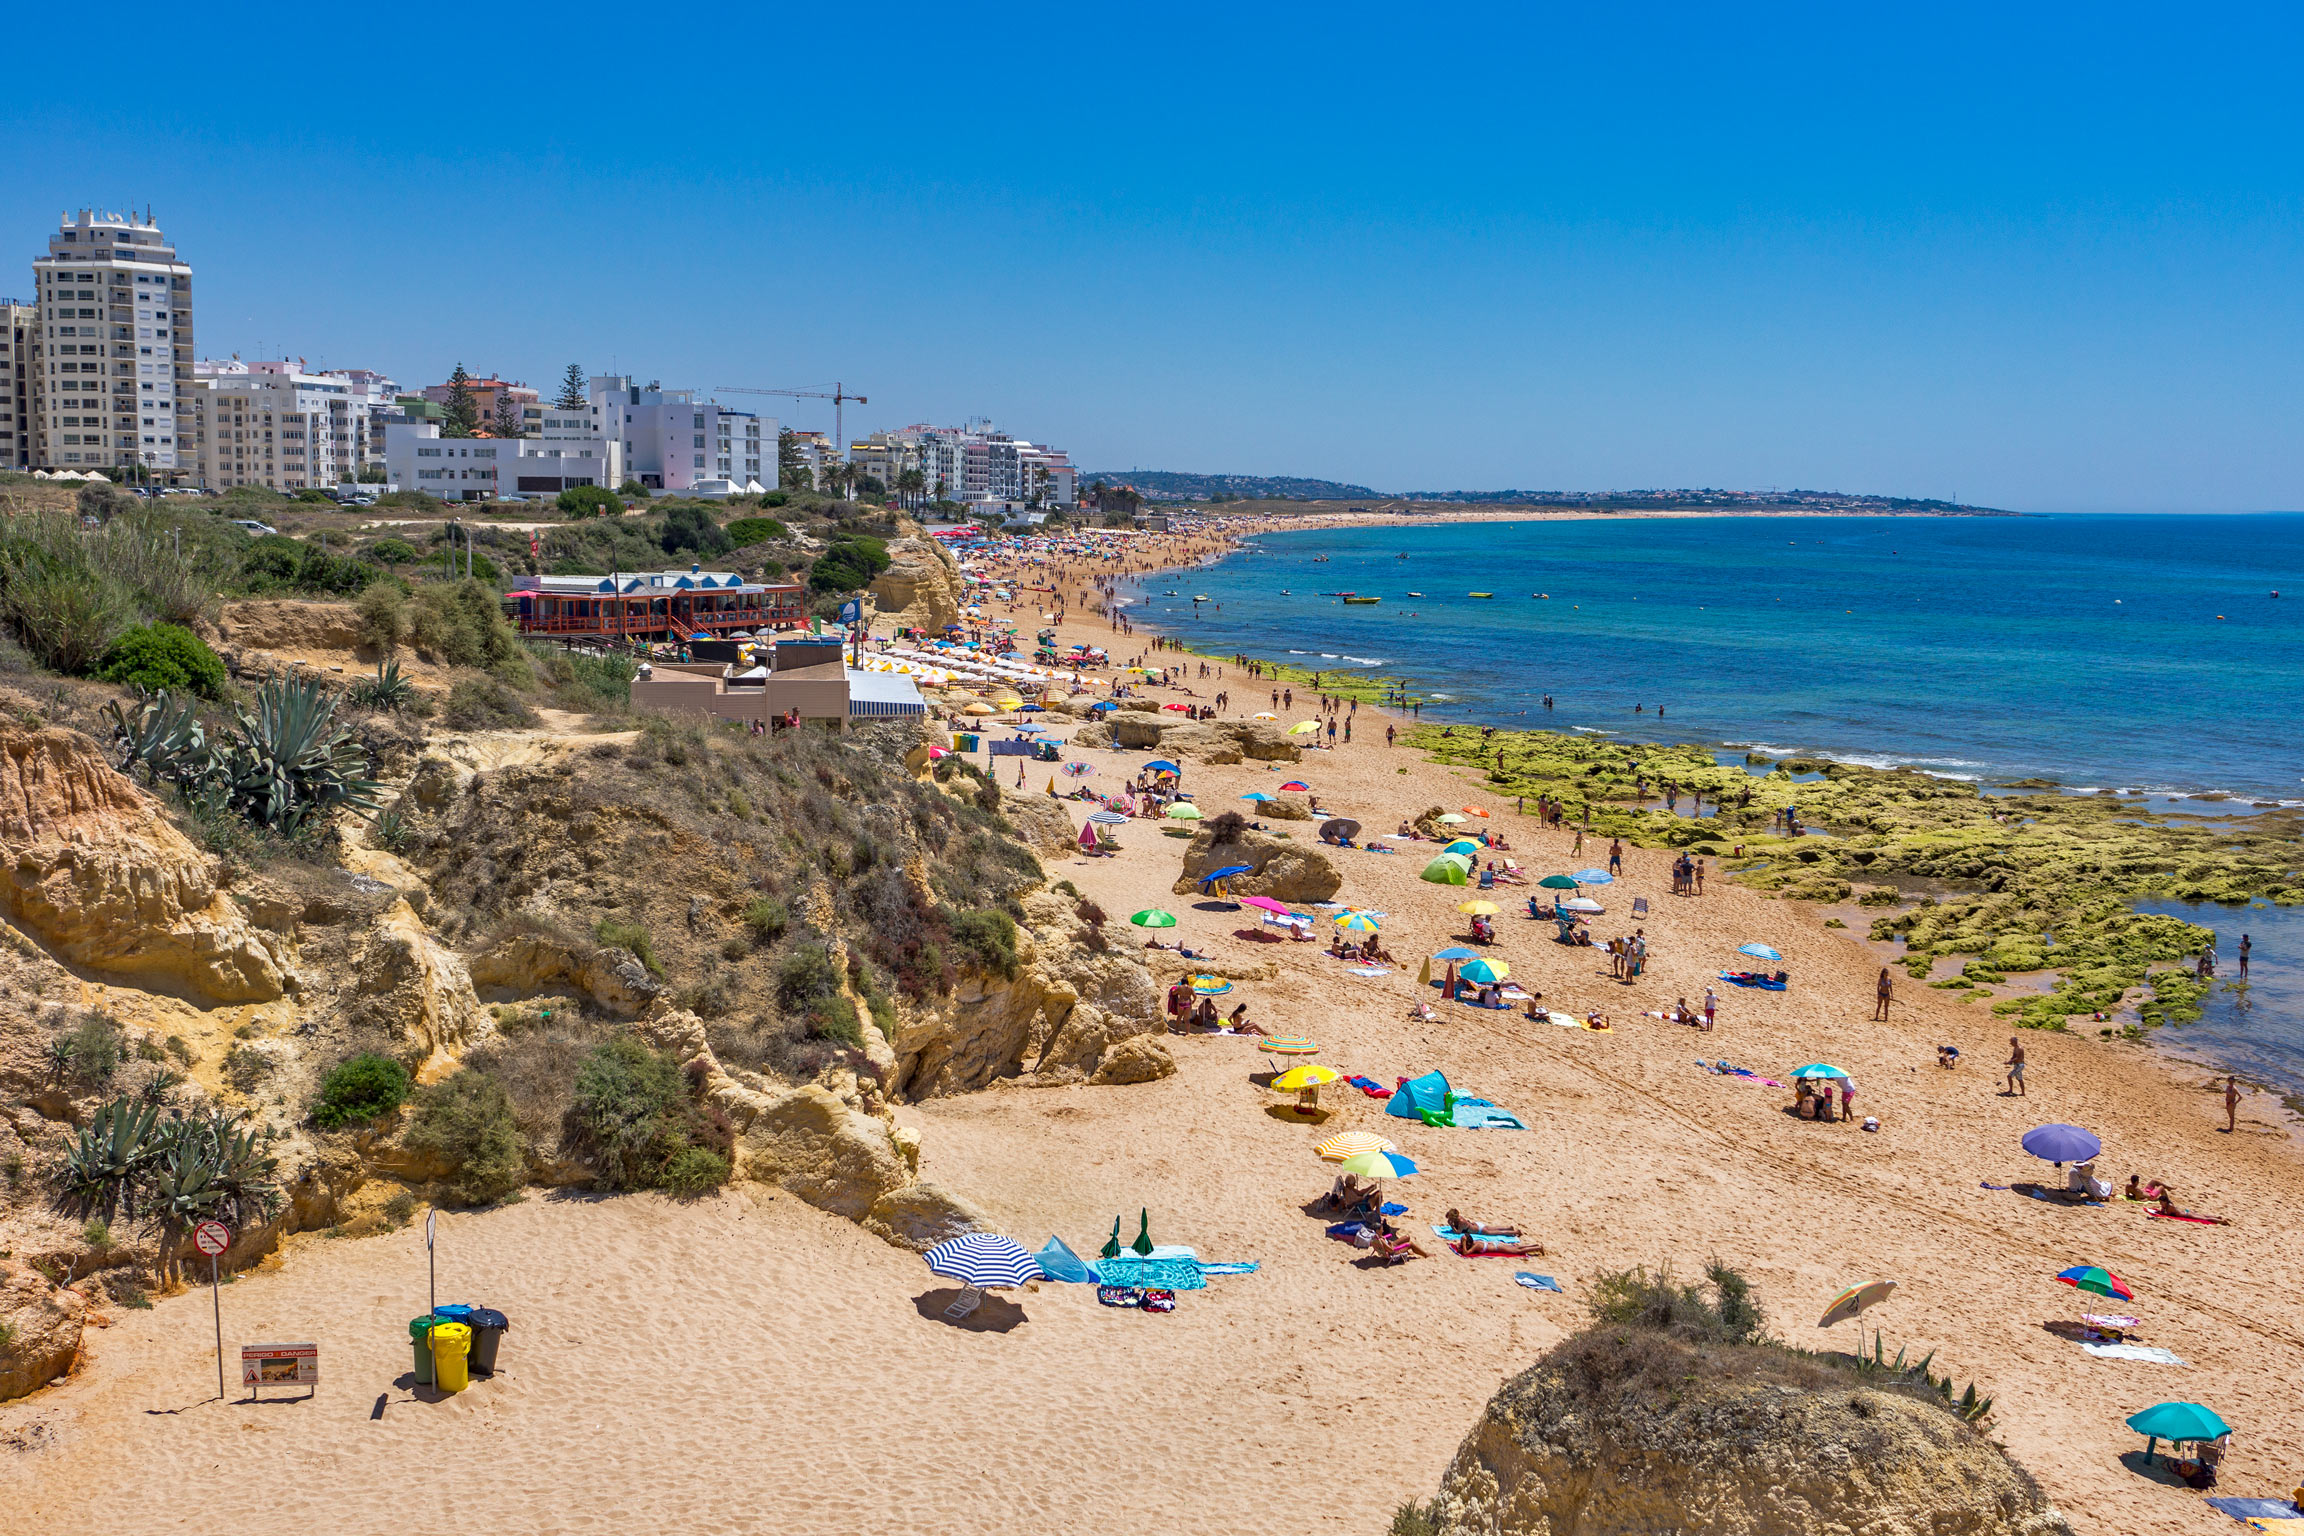 algarvebeachoverview_DSC6385